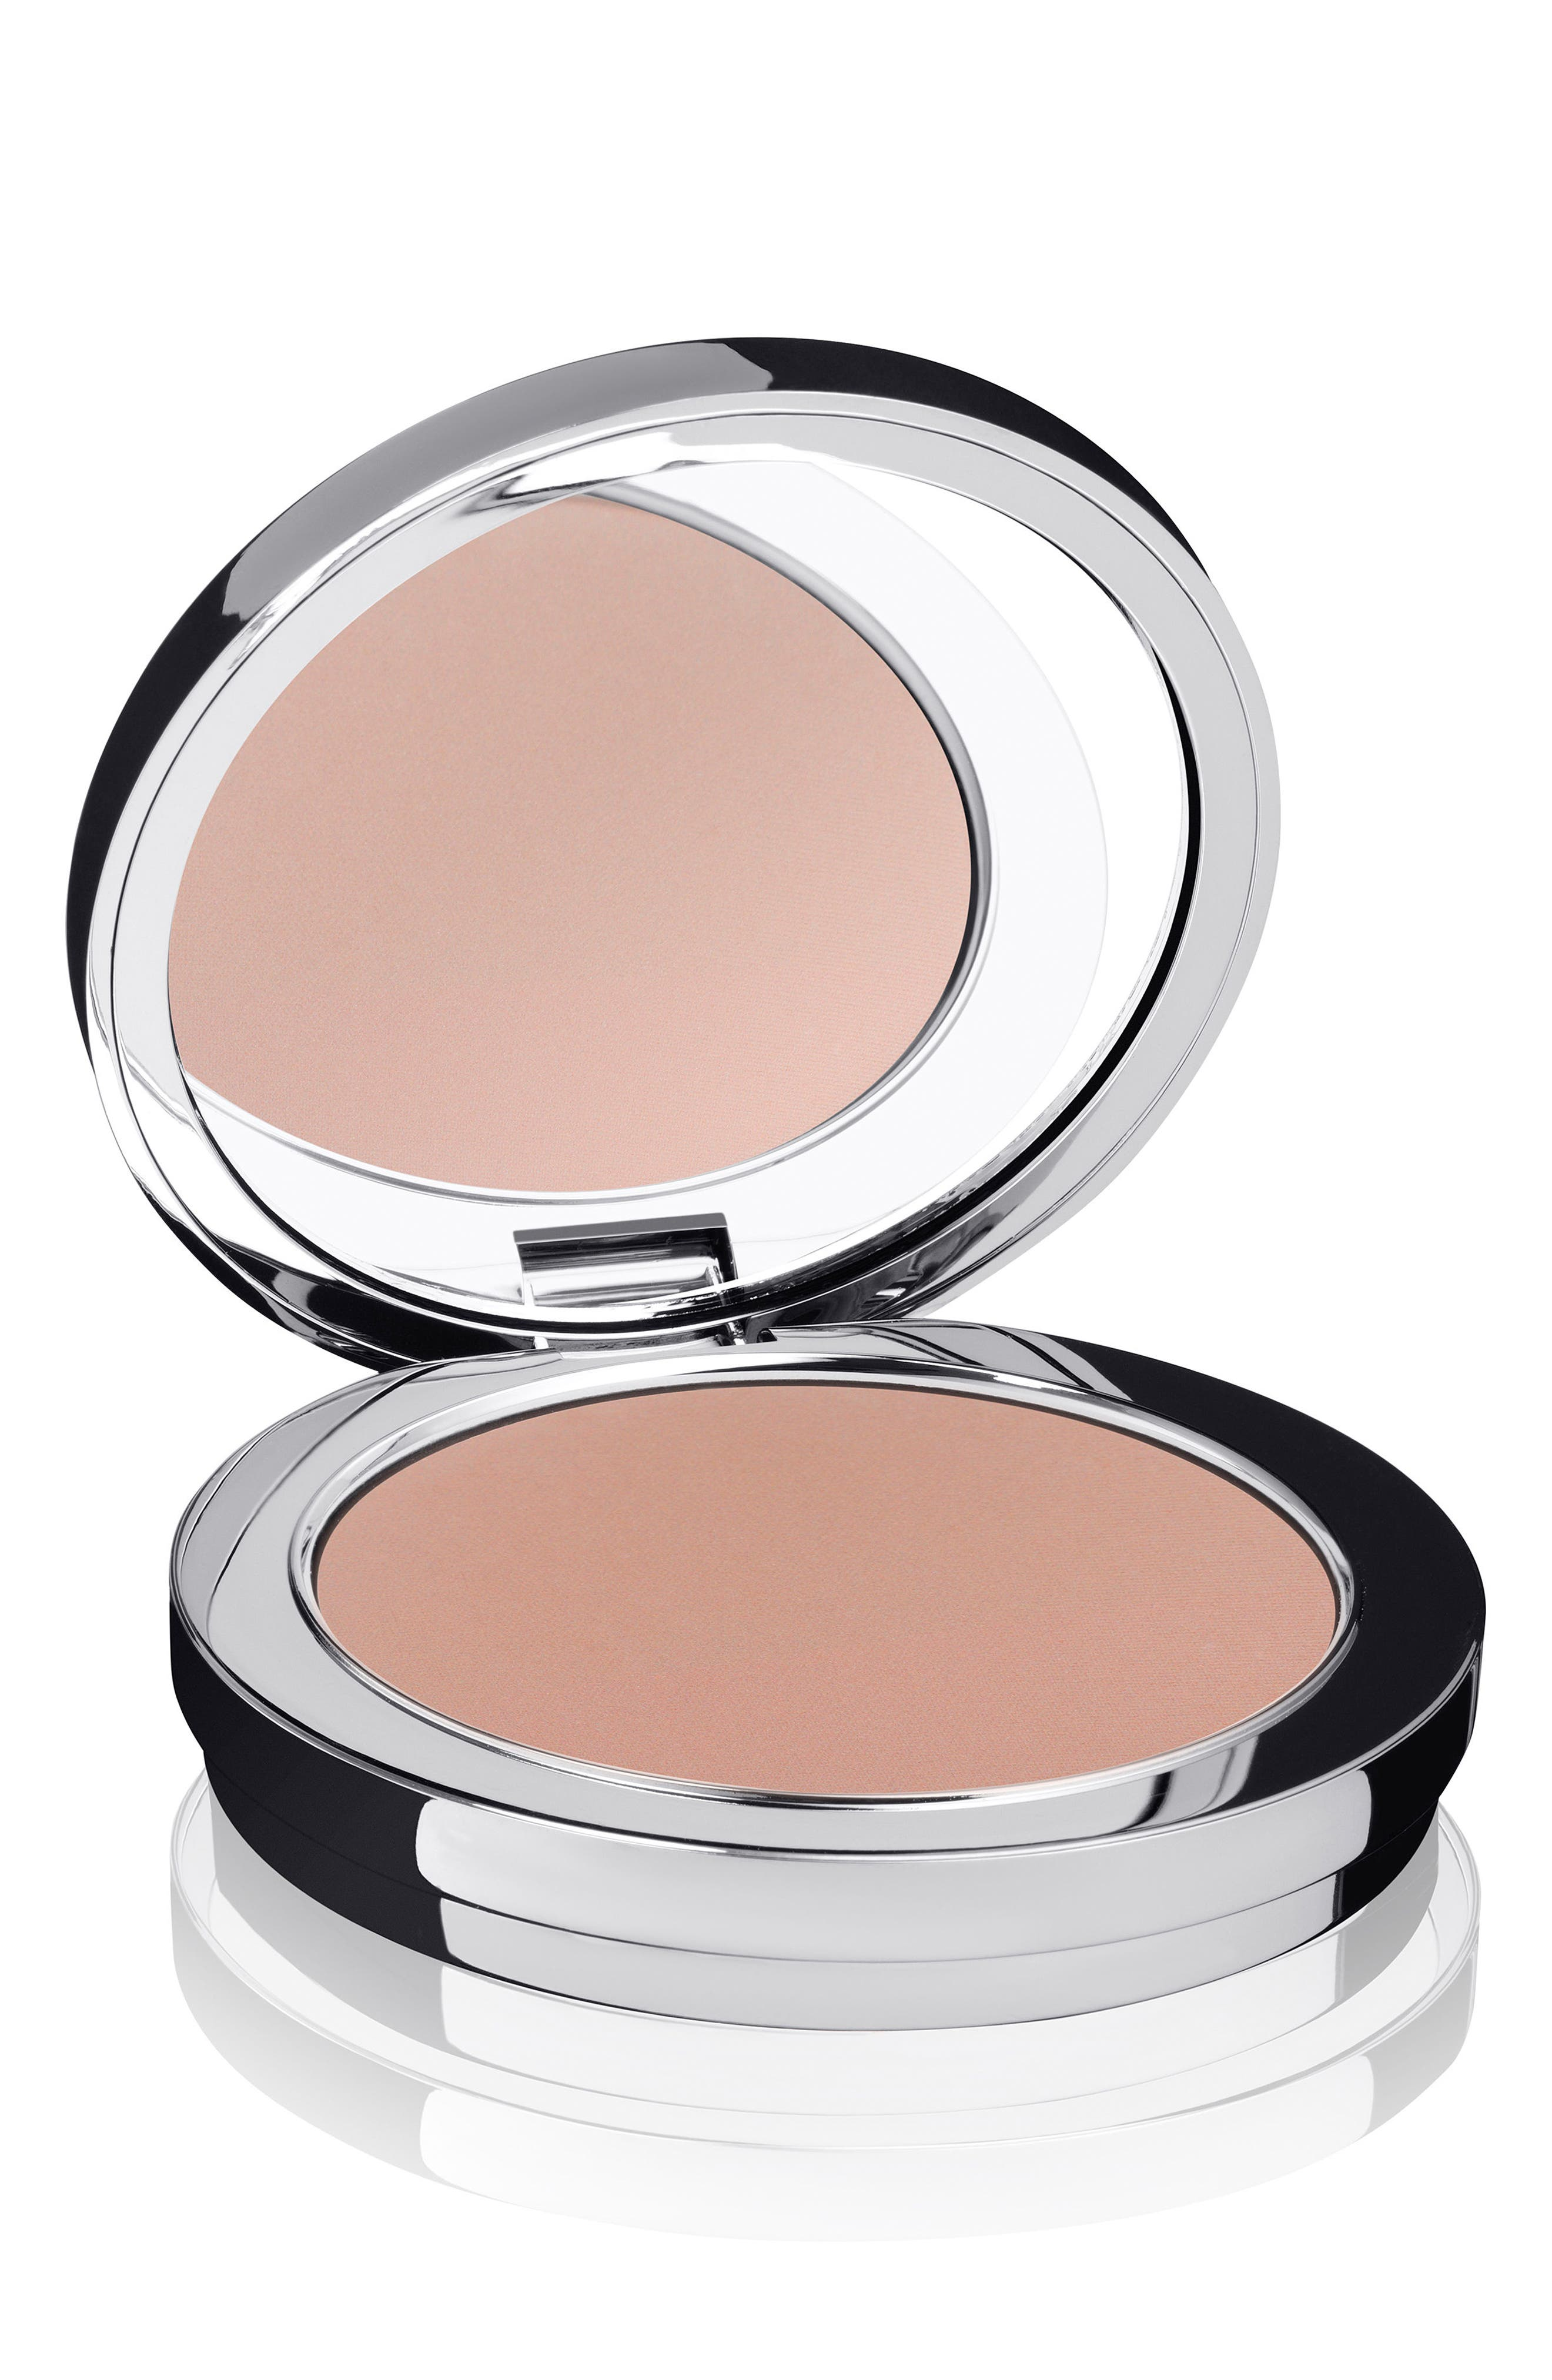 SPACE.NK.apothecary Rodial Instaglam<sup>™</sup> Deluxe Bronzing Powder Compact,                             Main thumbnail 1, color,                             200